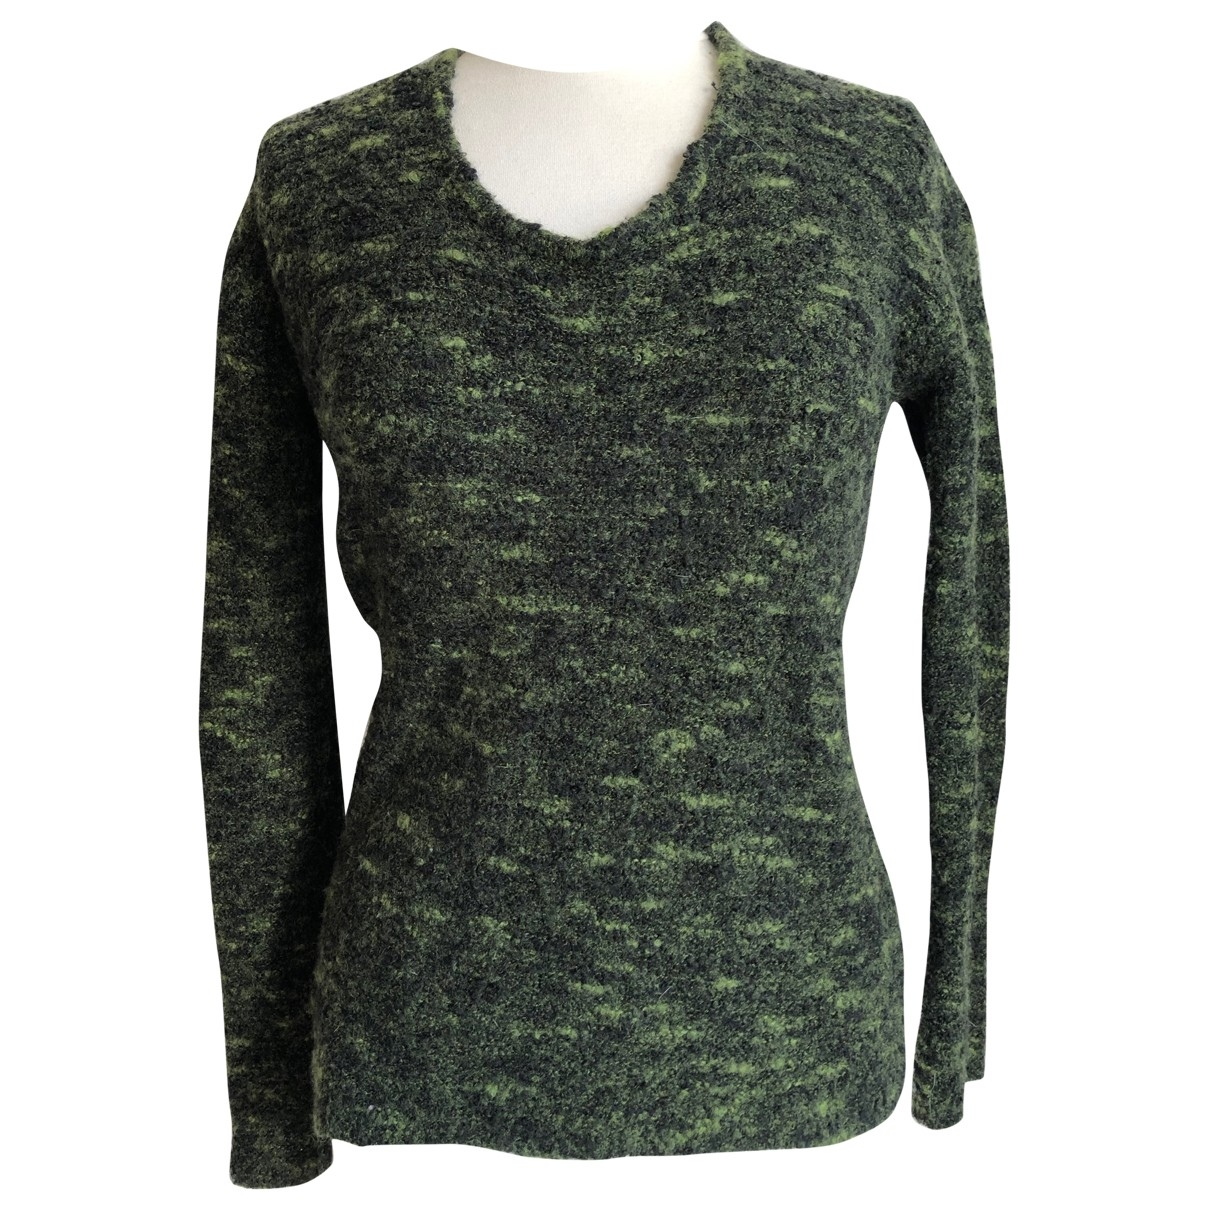 American Vintage \N Green Knitwear for Women M International